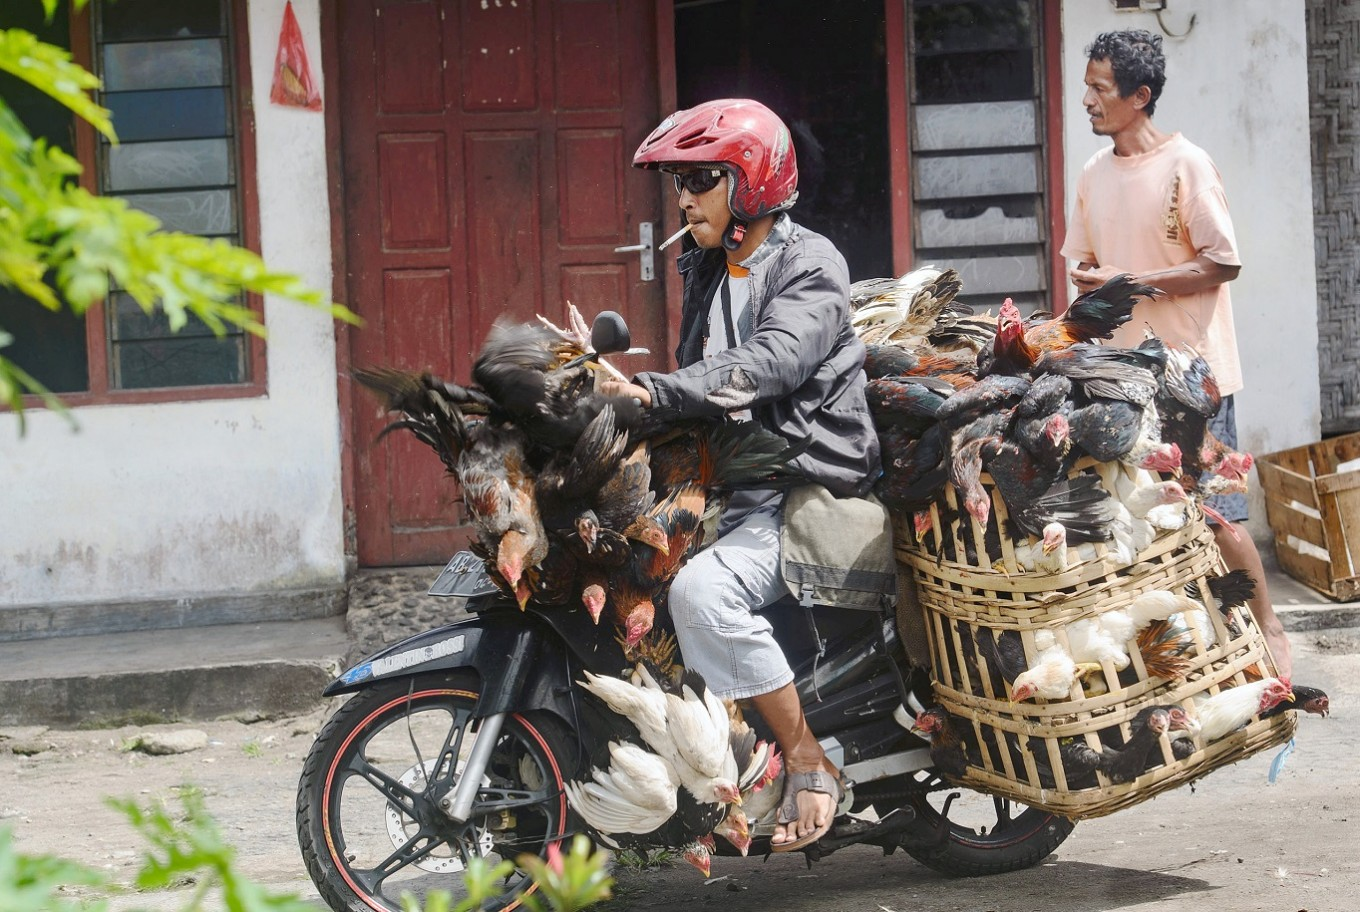 For sale: A man takes his chickens to the market.